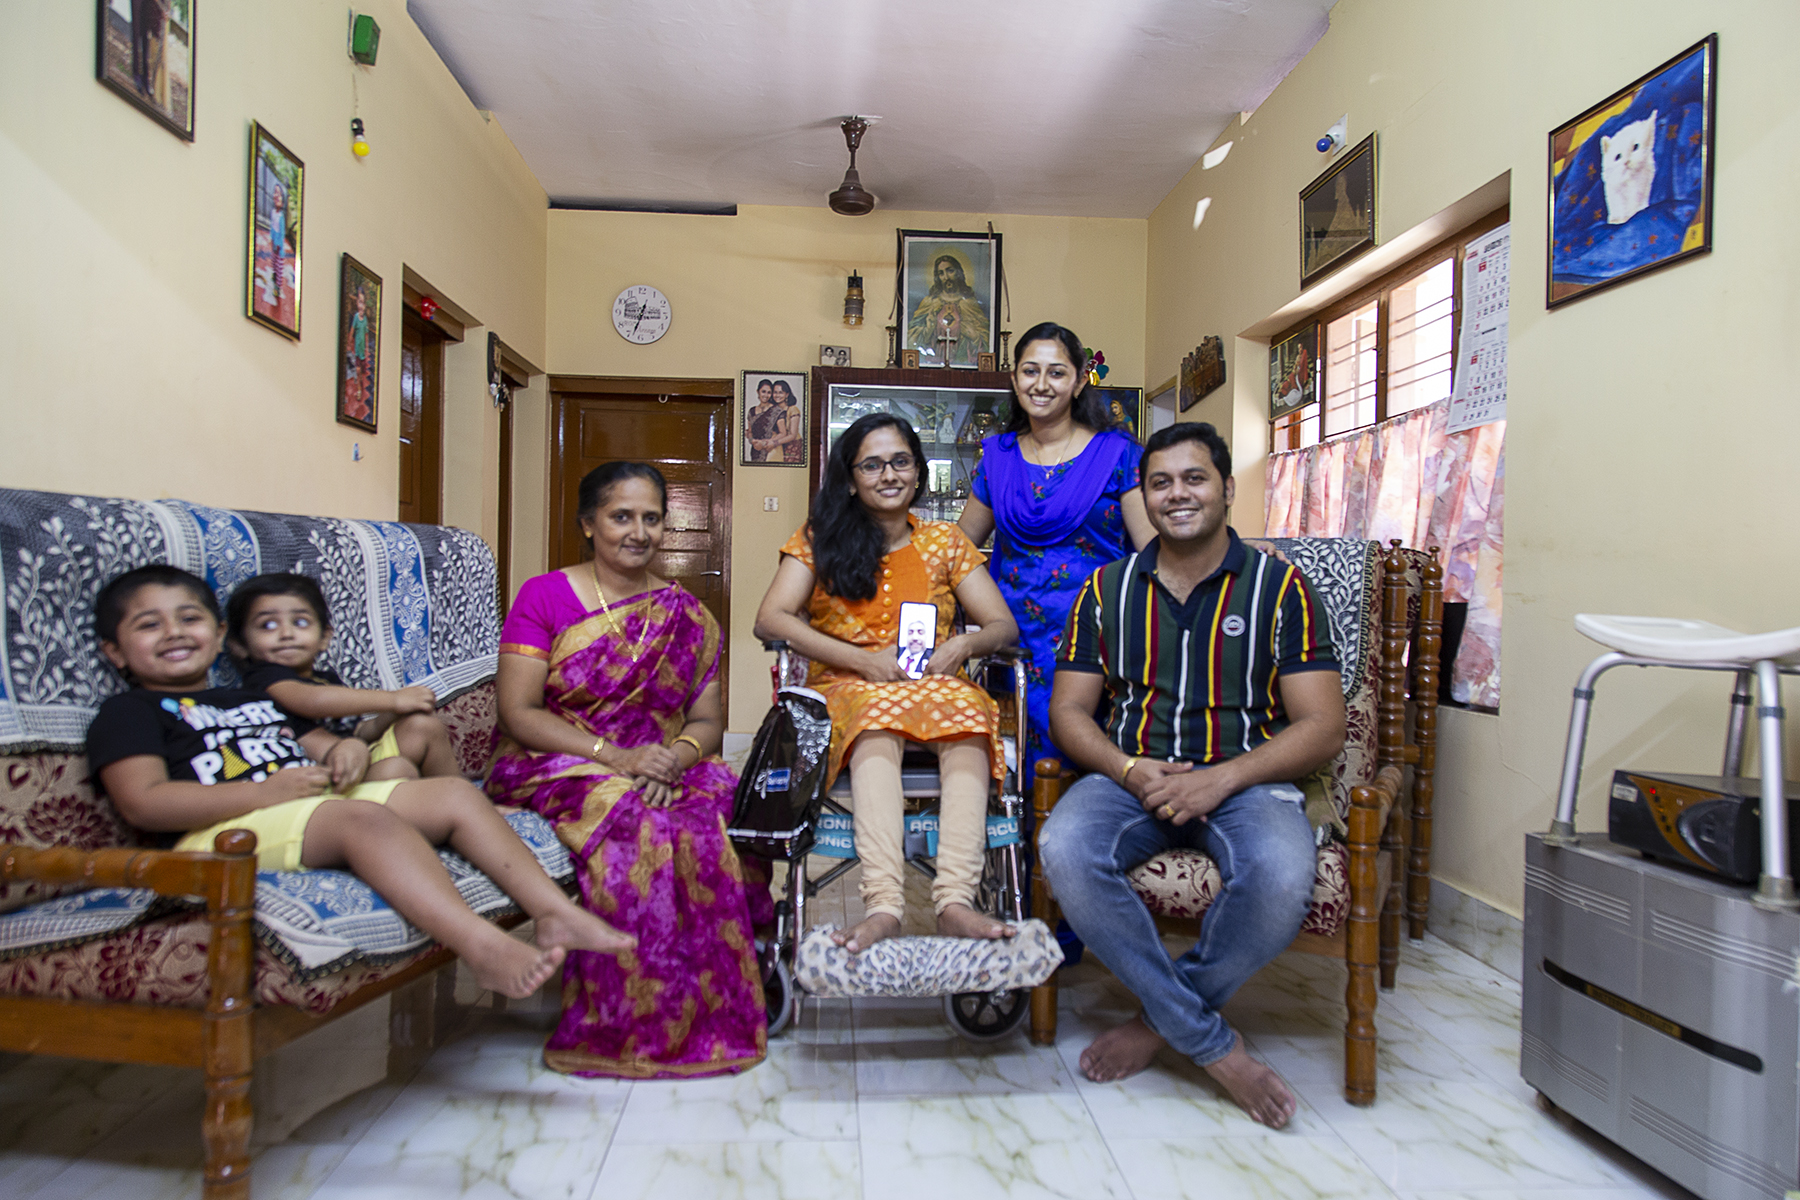 Nincy and family pose in the living room. Nincy in orange kameez and beige churidar is in the centre of the frame, in her wheelchair, holding up her phone screen which shows a photo of her father Mondly Mathew Oommen, 60. Liam and Louie in shorts and T-shirts sit on a double sofa in the near left corner. Lena in a magenta sari sits to the left of Nincy, and Nimmy in a royal blue salwar-kameez stands to the right. Nimmy's husband Dany John Selvan, 33, sits at the extreme right, dressed in light blue jeans and black T-shirt with yellow, white and maroon vertical stripes.